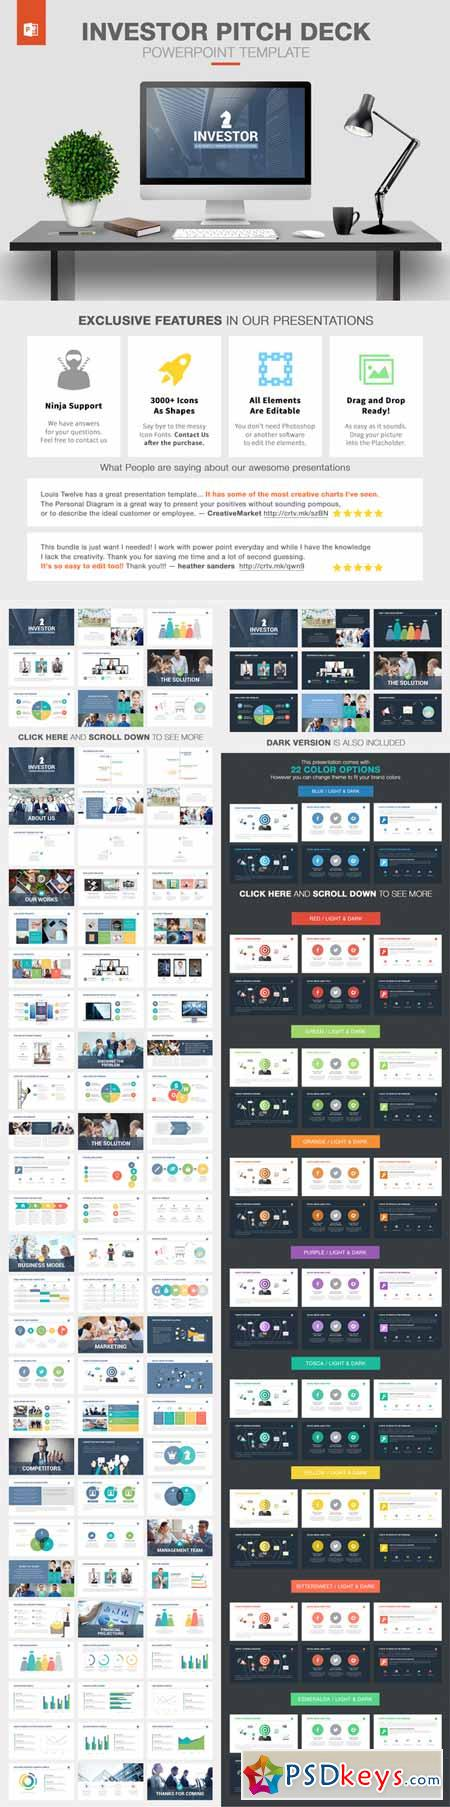 Investor pitch deck powerpoint 225853 free download photoshop investor pitch deck powerpoint 225853 alramifo Images